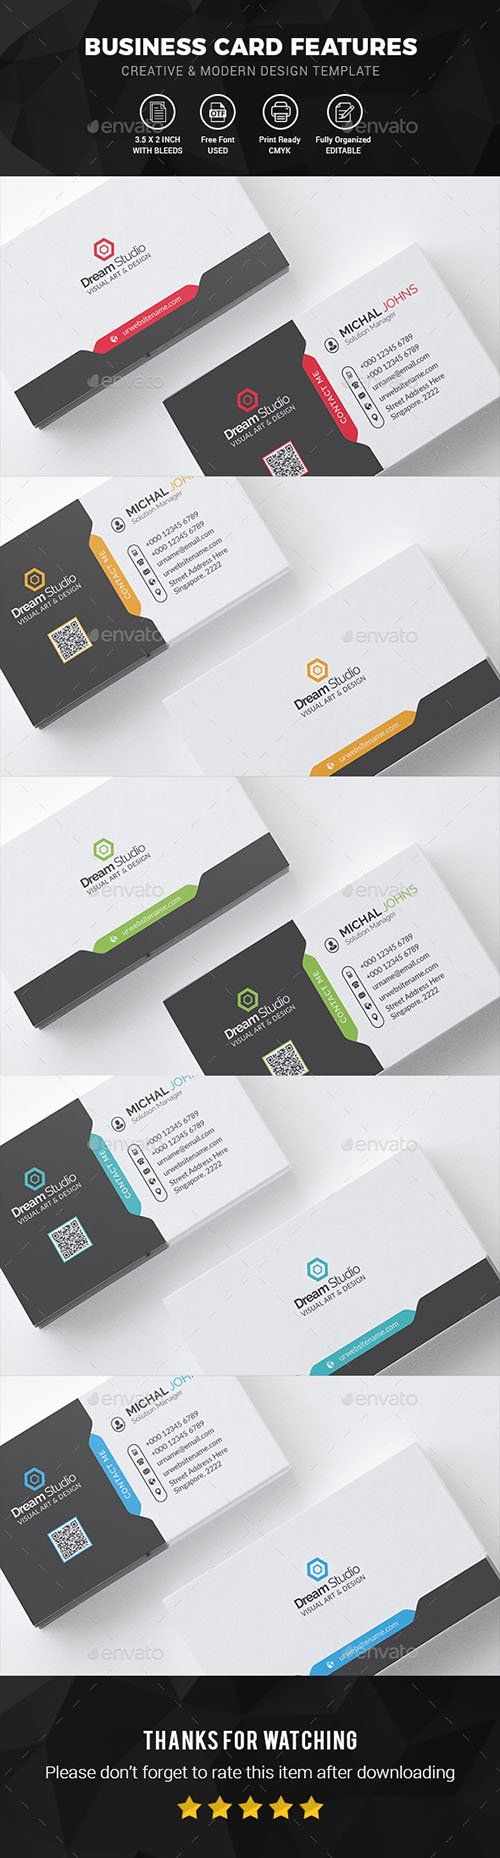 Business Cards 21460680